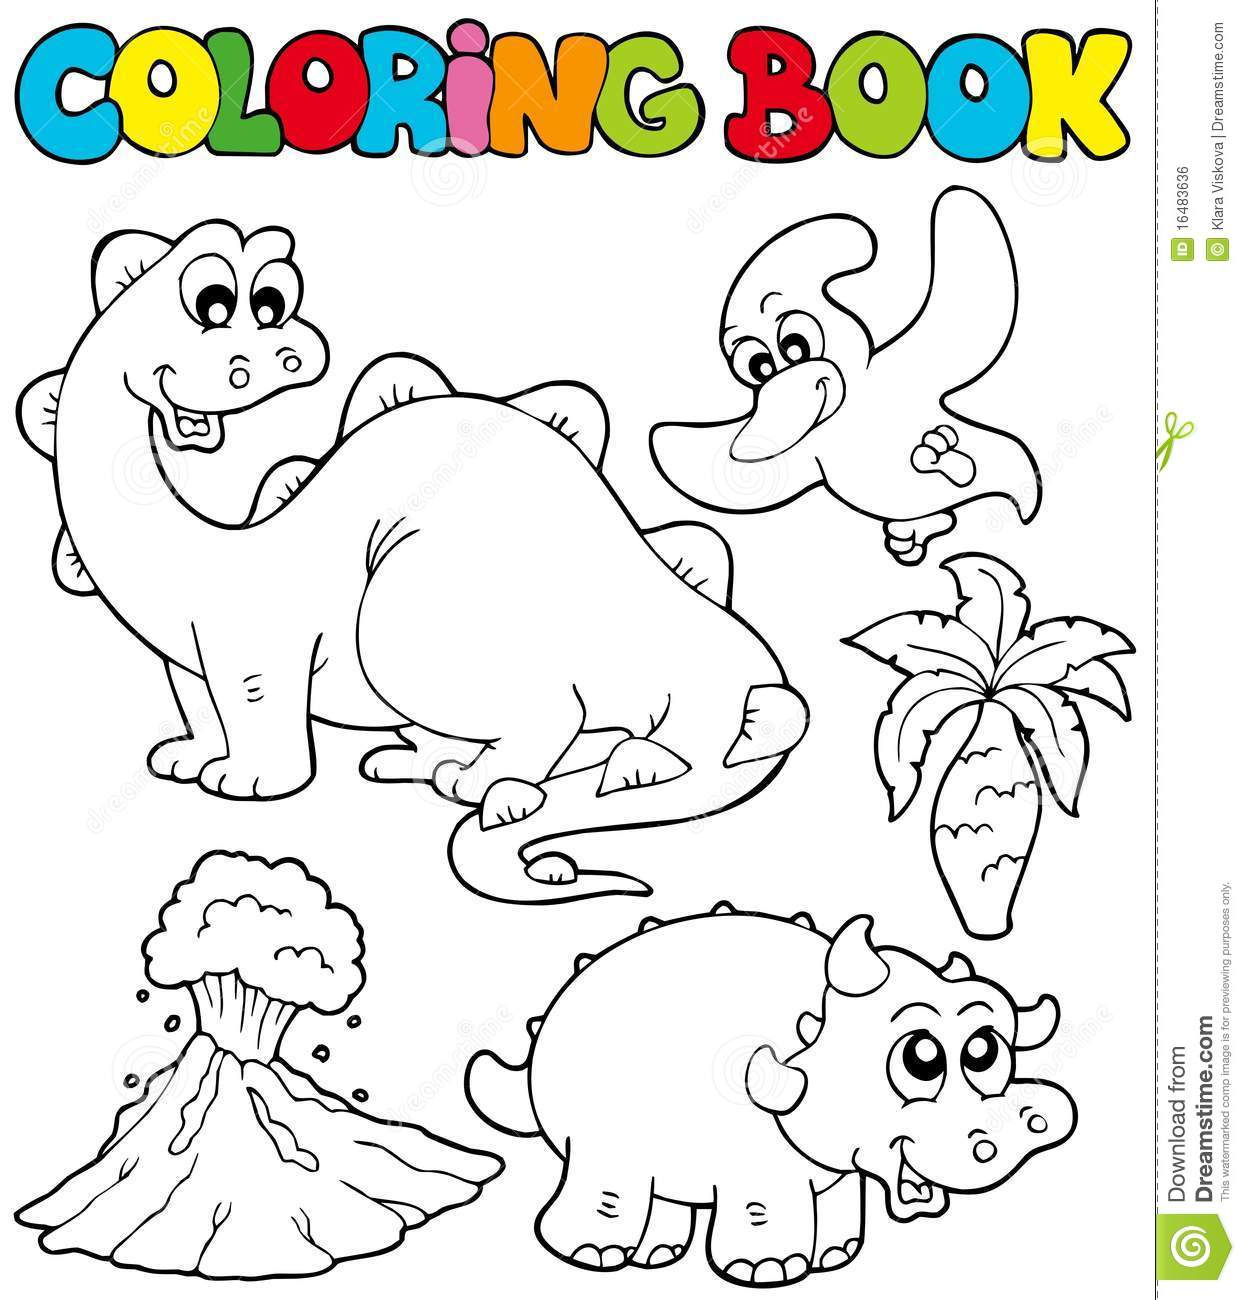 Coloring Book With Dinosaurs 2 Royalty Free Stock Image